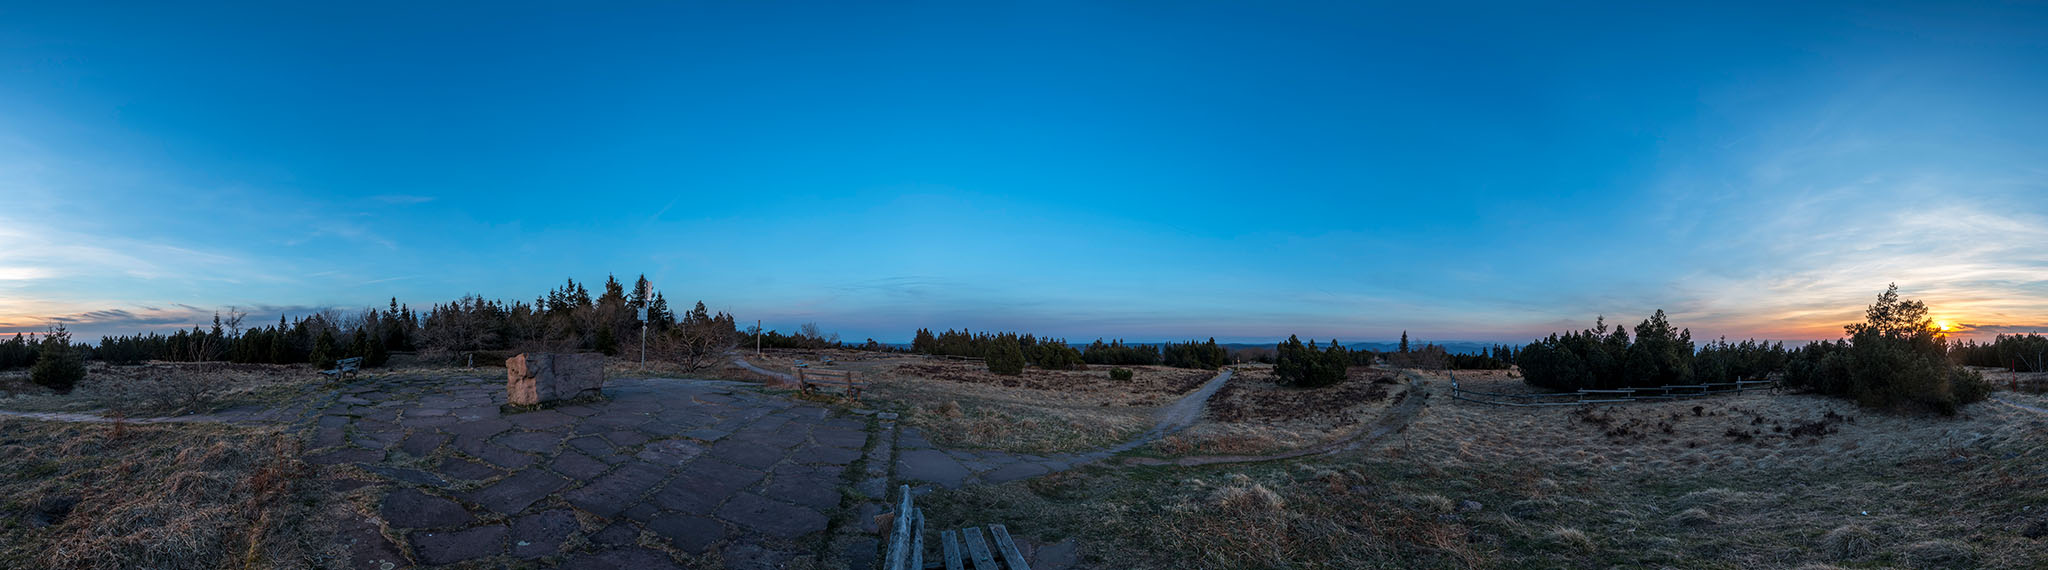 unbenannt-466-HDR-Pano